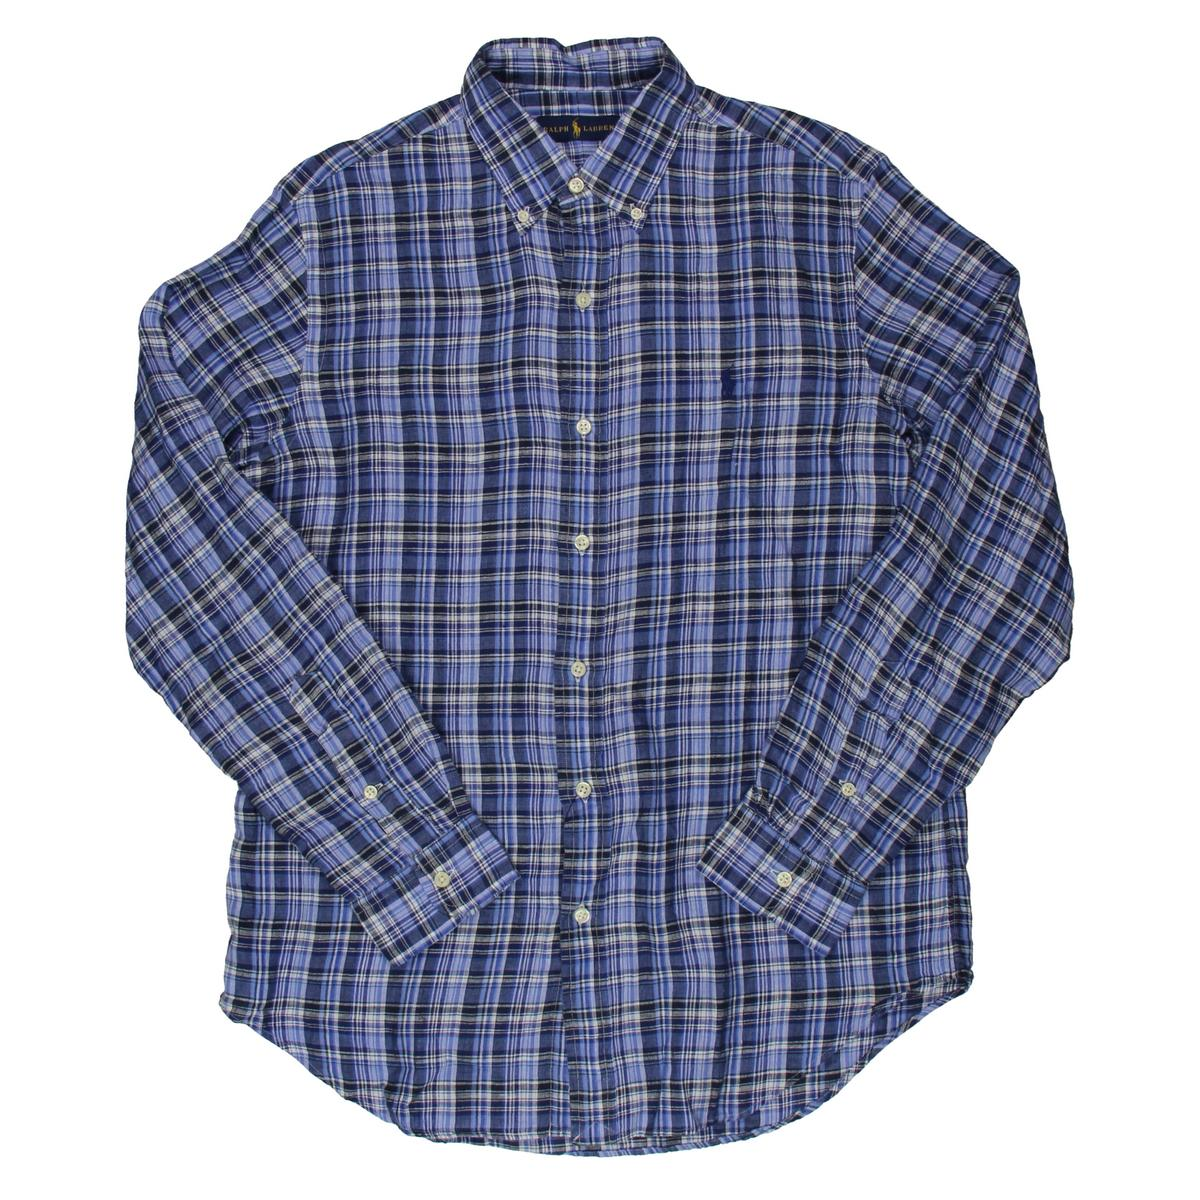 Polo Ralph Lauren 8471 Mens Linen Plaid Long Sleeve Button-Down ...